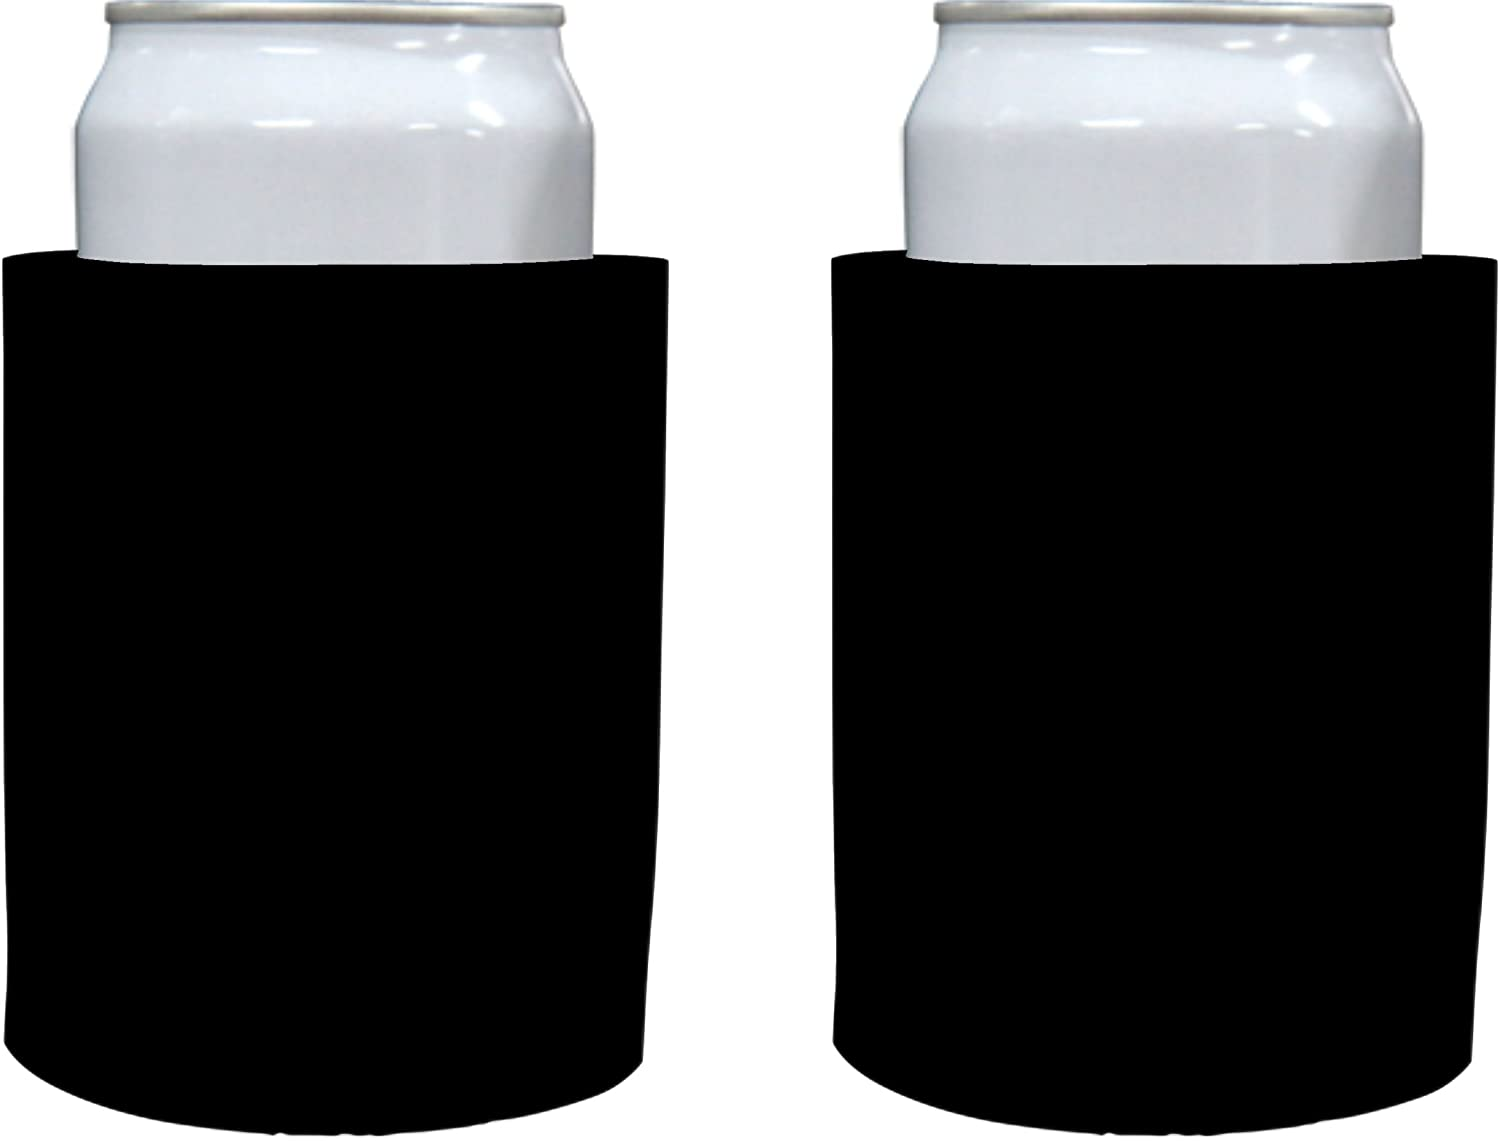 "Blank Thick Foam ""Old School"" Style Can Cooler(s) (2, Black)"